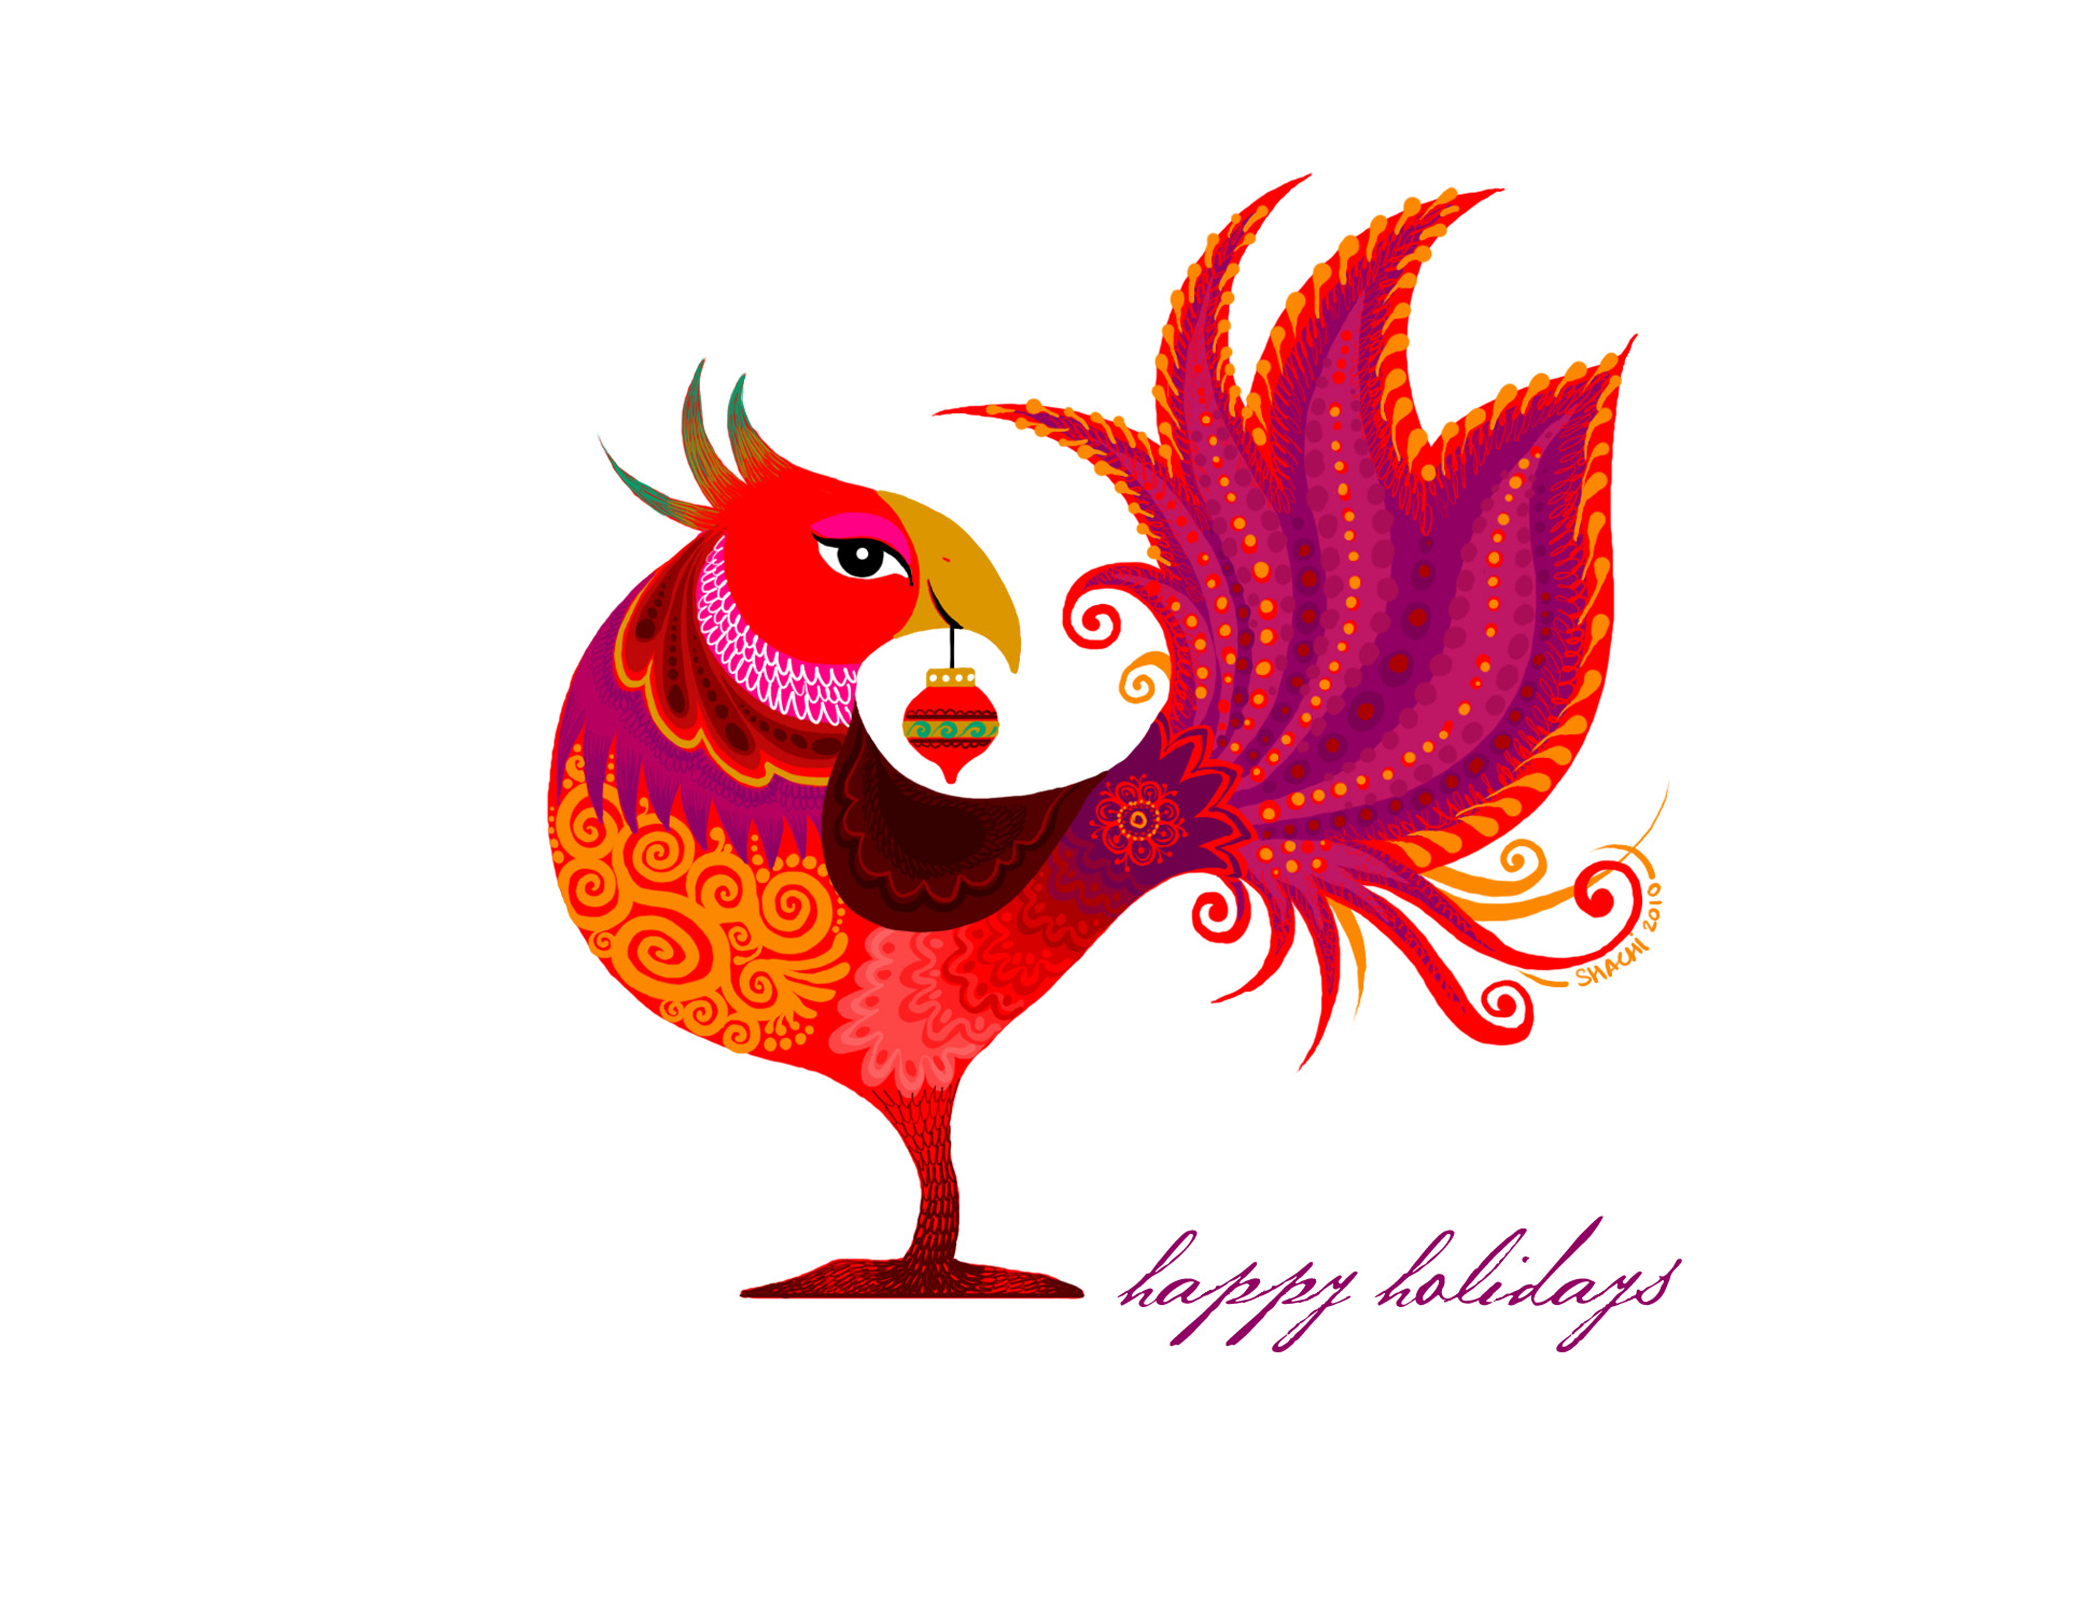 new-year-card-2010.jpg